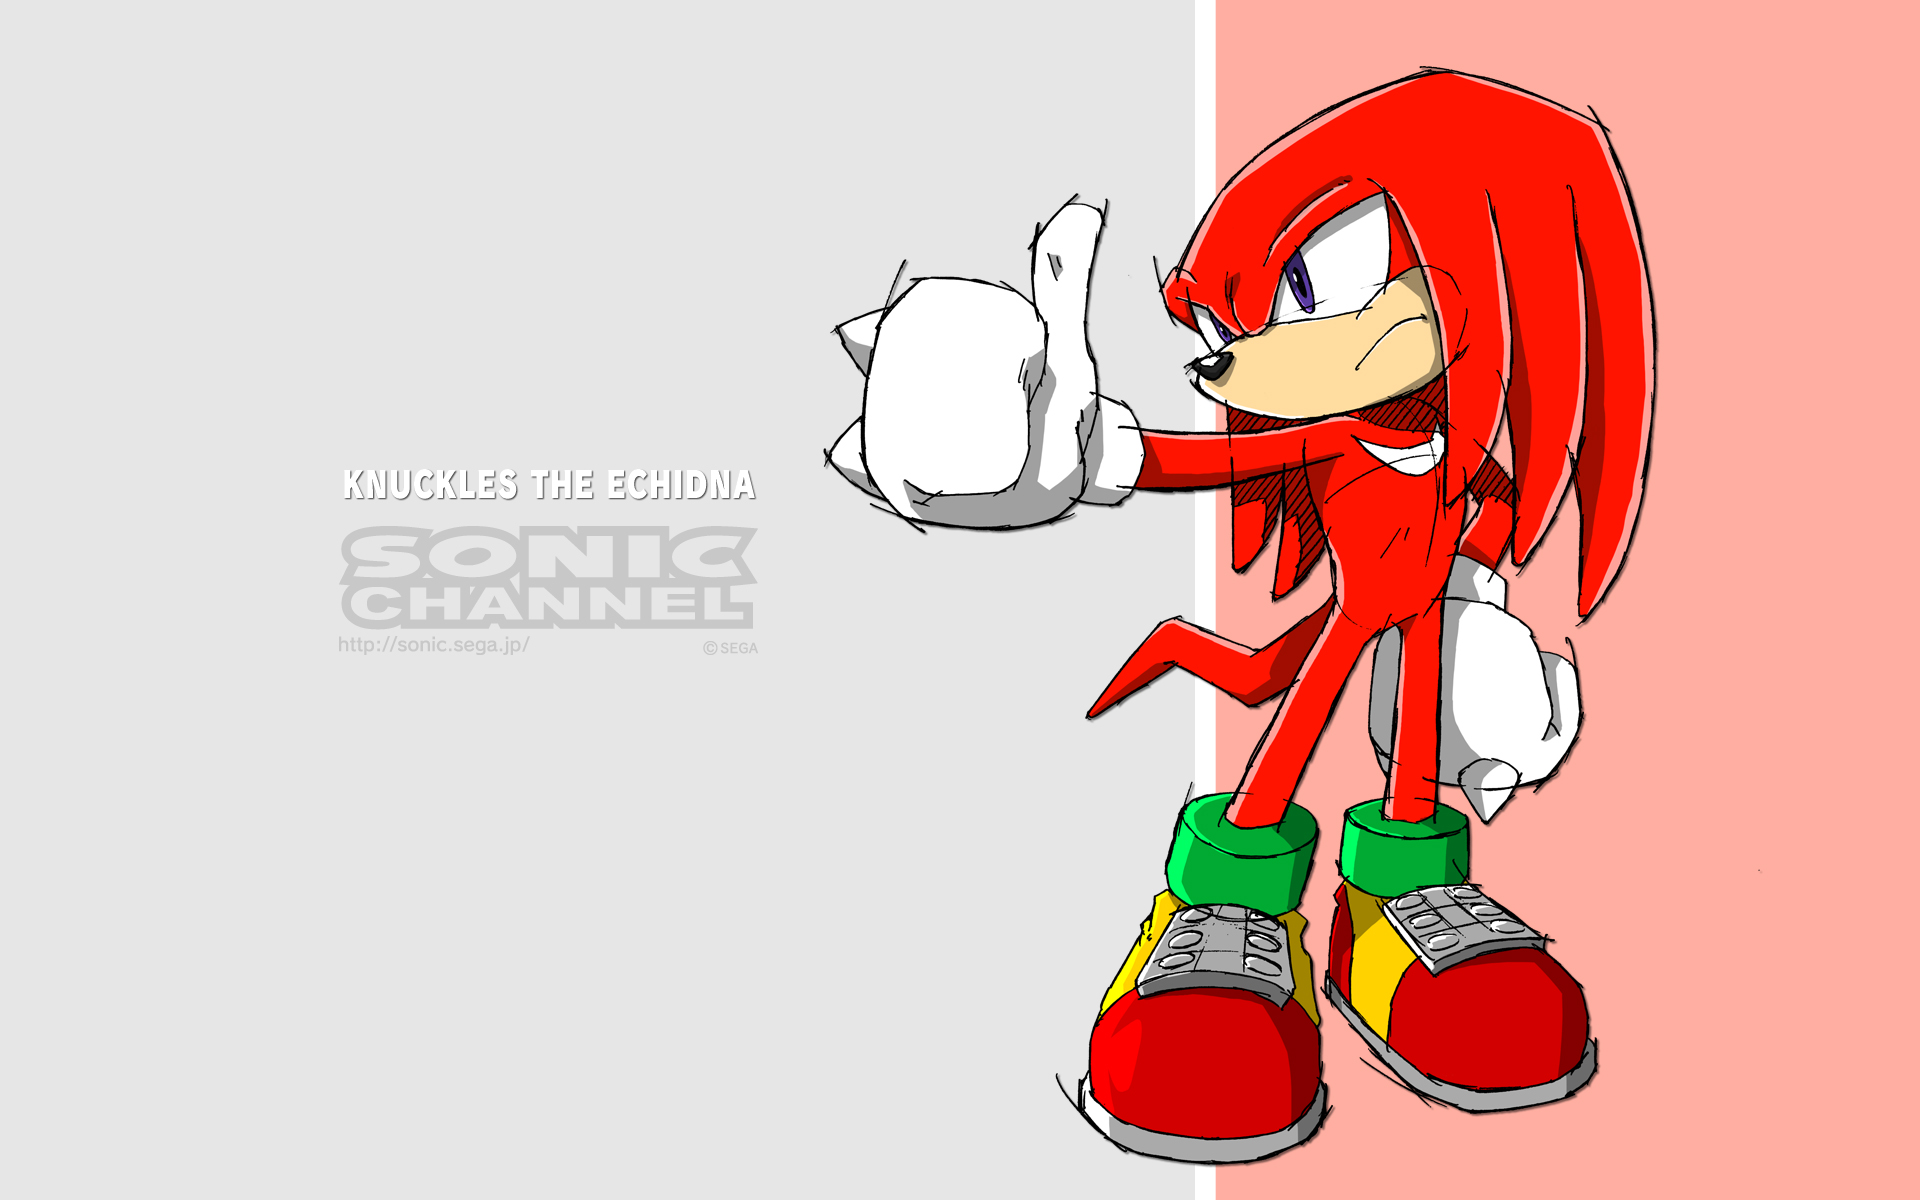 Knuckles #8